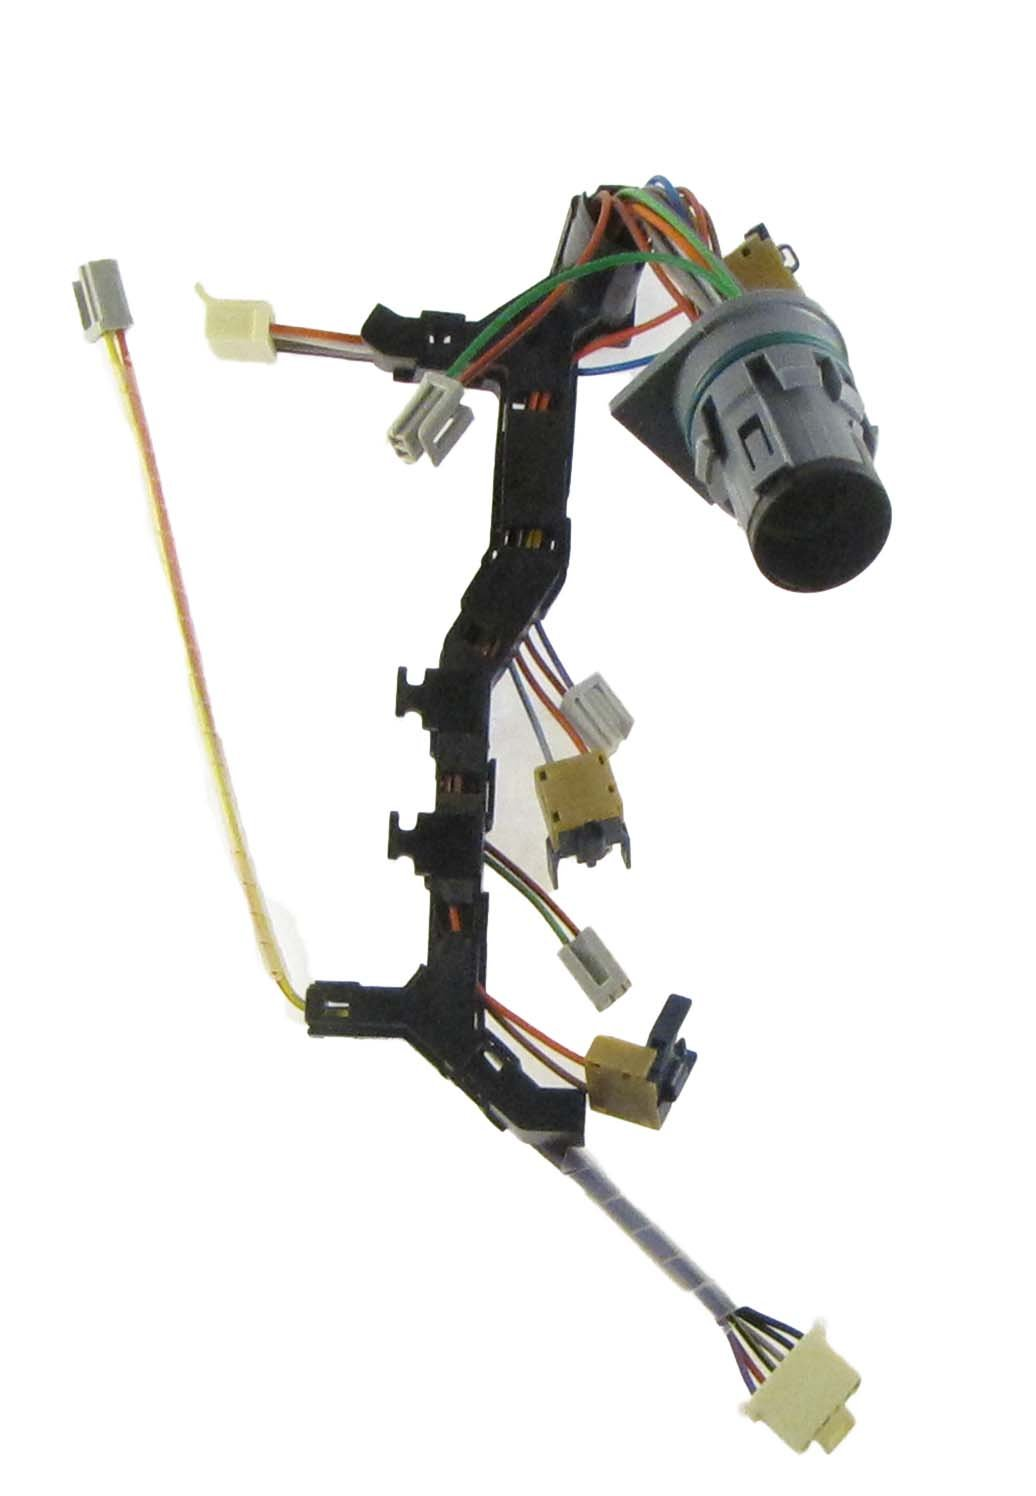 Rostra Wire Harness For Allison Transmission 7 Solenoid type